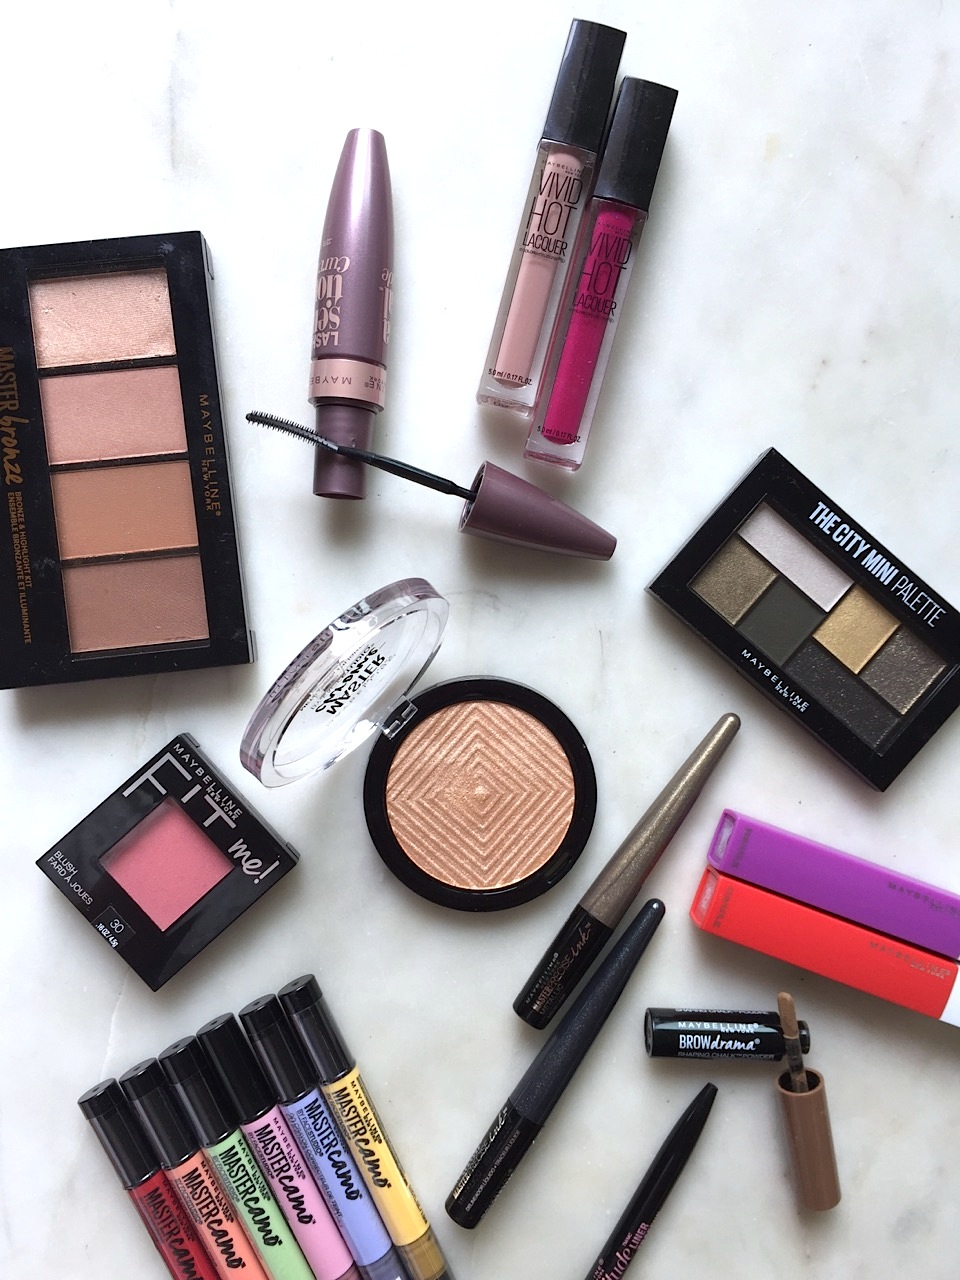 Maybelline Fall 2017 release: A quick review